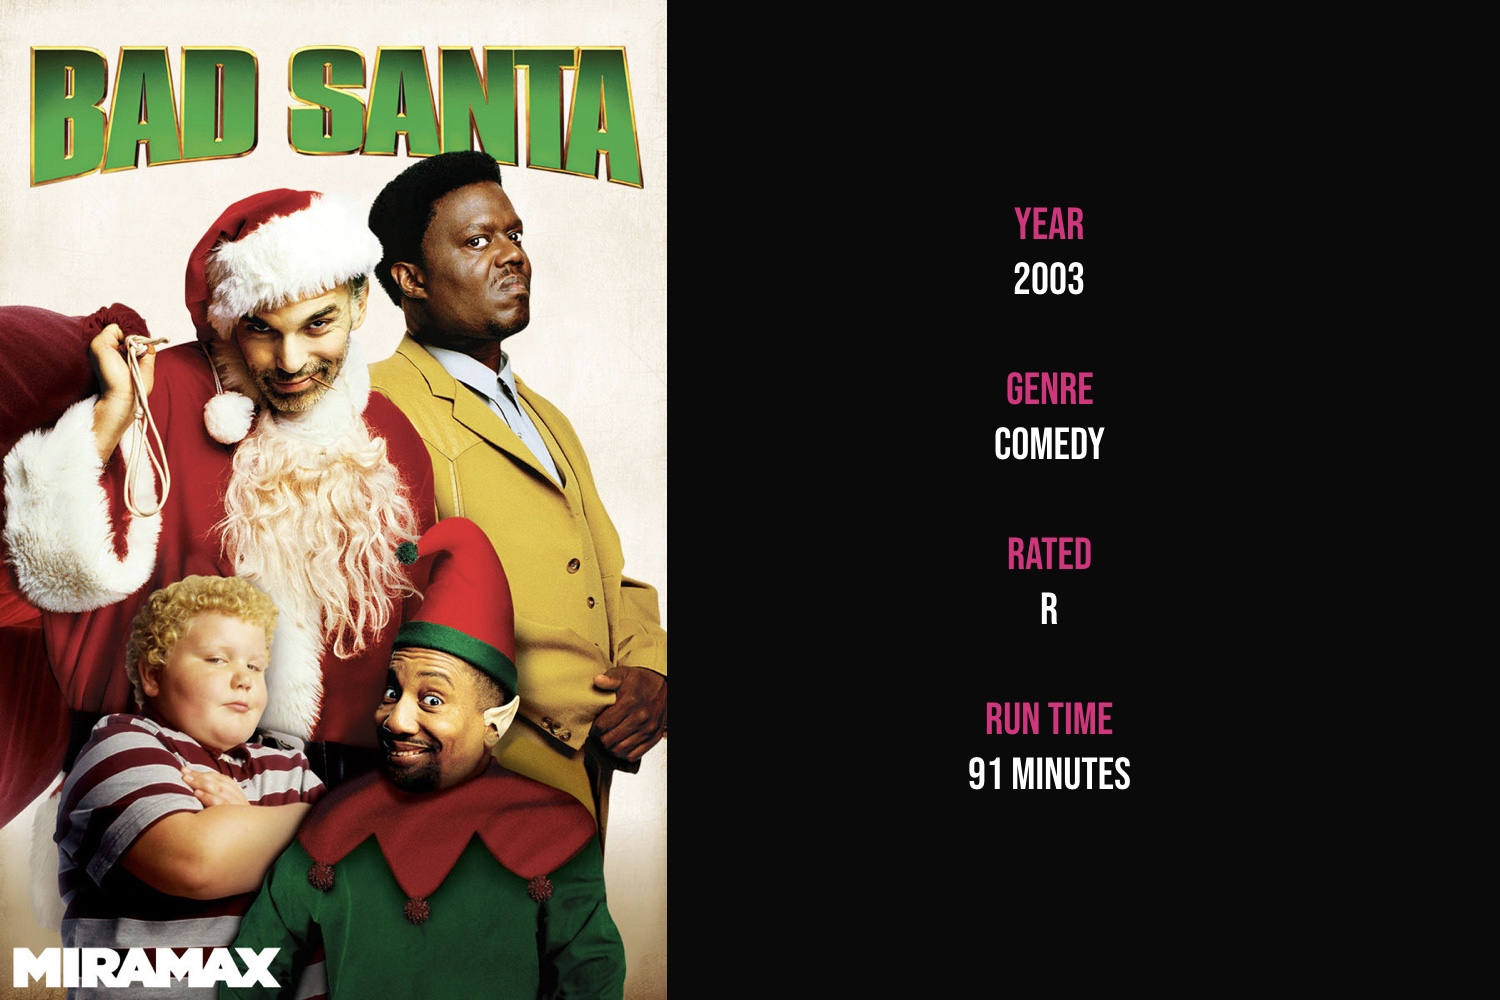 Bad Santa - A con man and his partner-in-crime pose as Santa and an elf to rob department stores every Christmas Eve, but this year's heist might be foiled by a store manager and mall detective.iTunes | Amazon